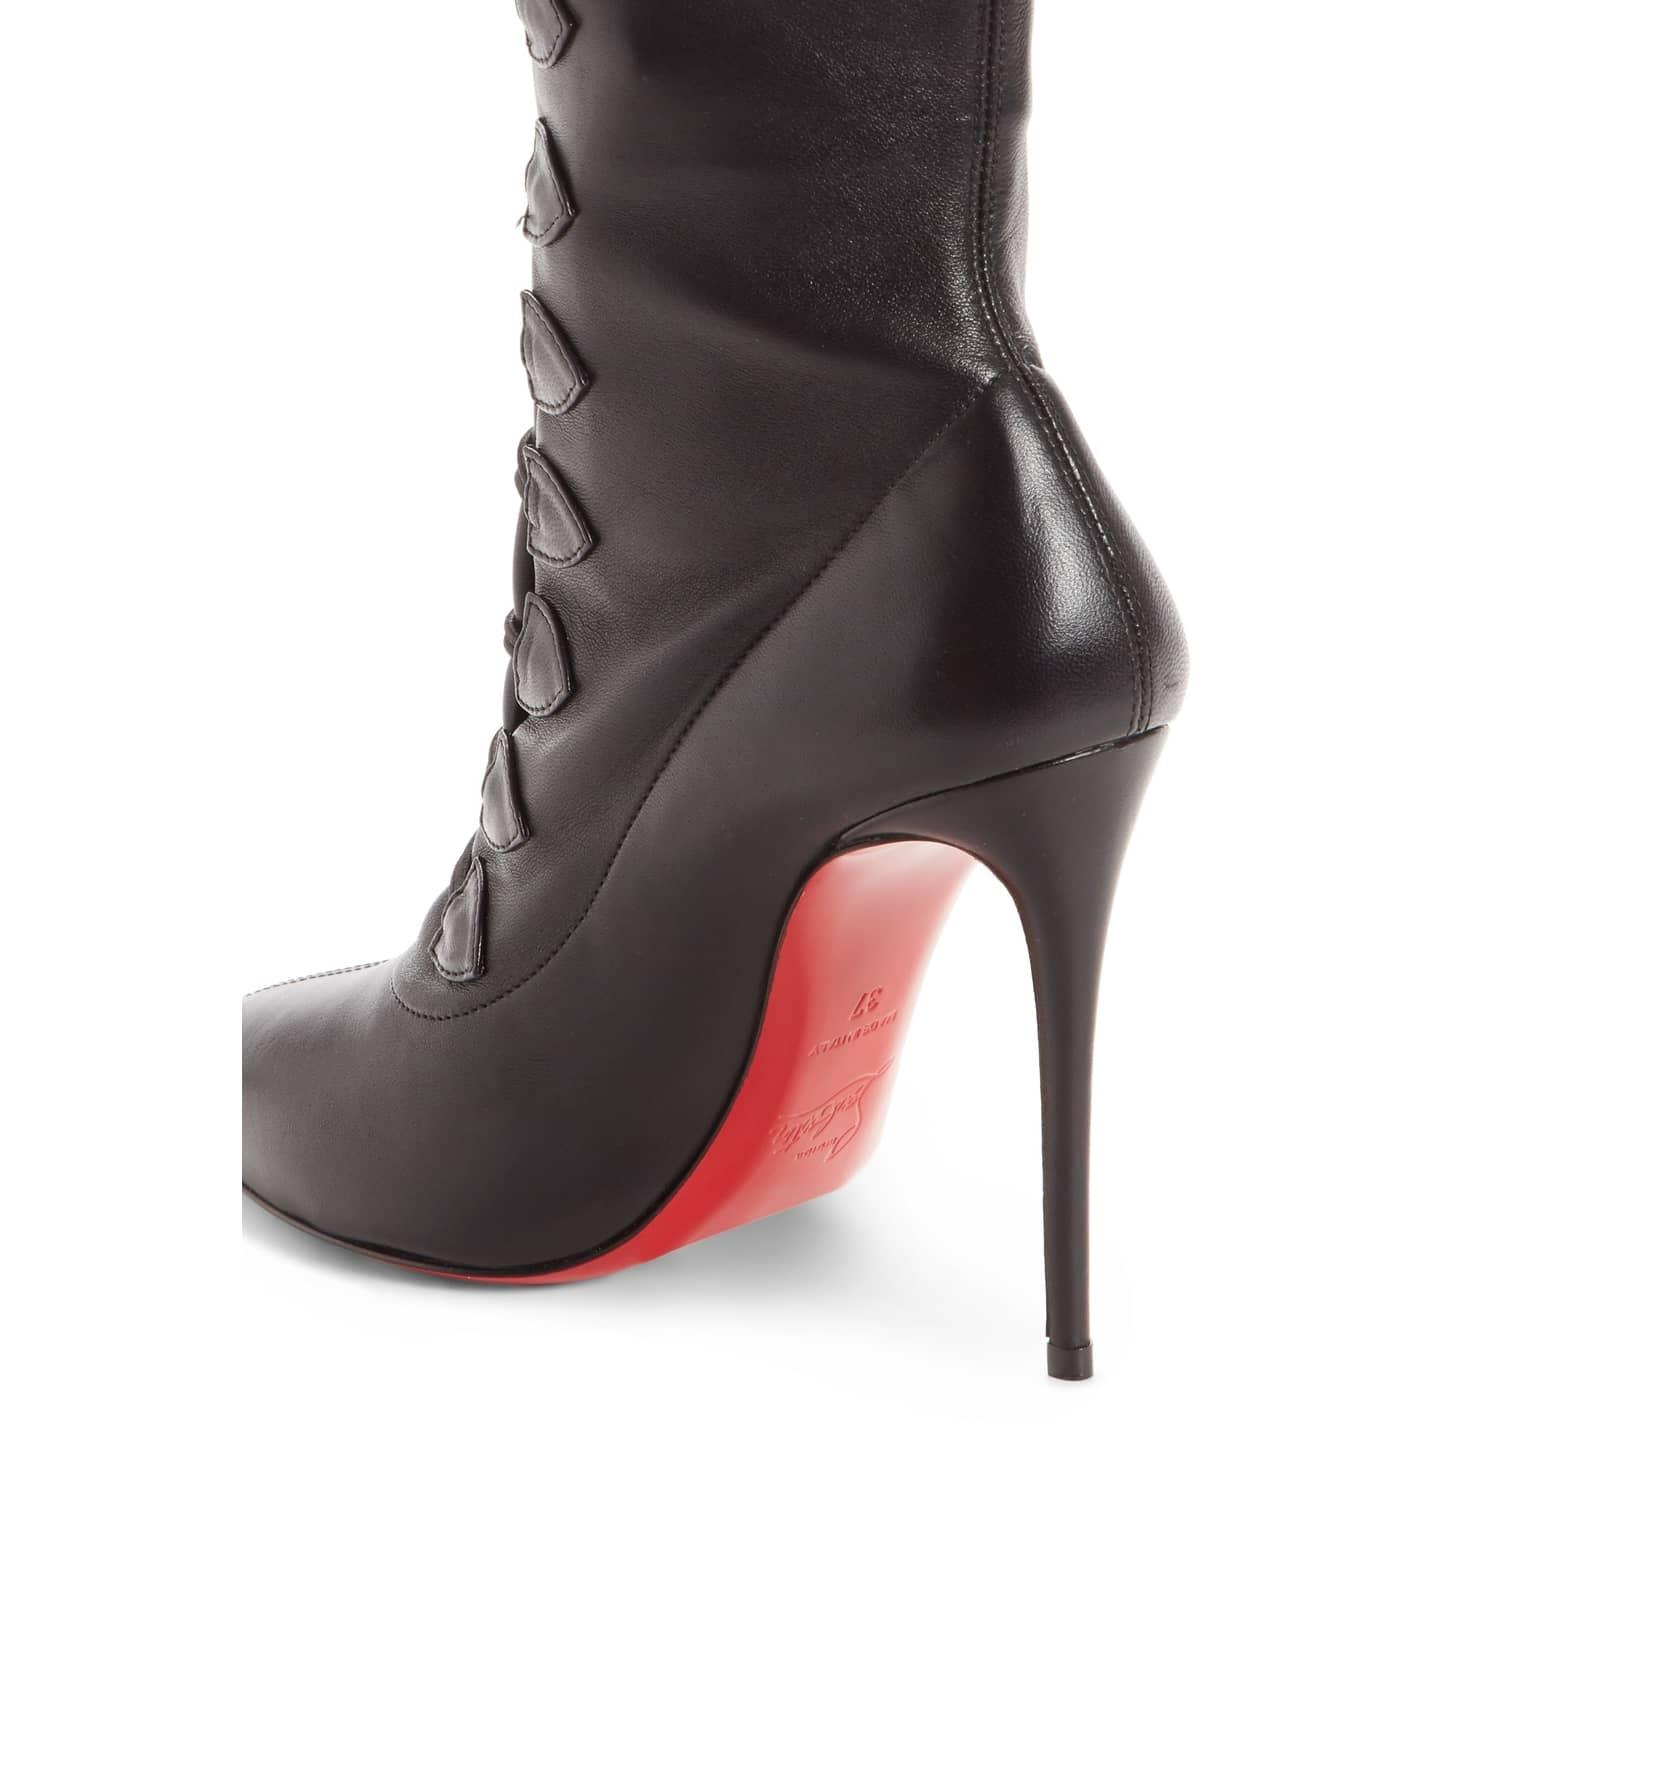 sale retailer feeef d4fe2 ... Christian Louboutin Black New French Tutu Pointy Pointy Pointy Toe 35  Boots Booties Size US ...